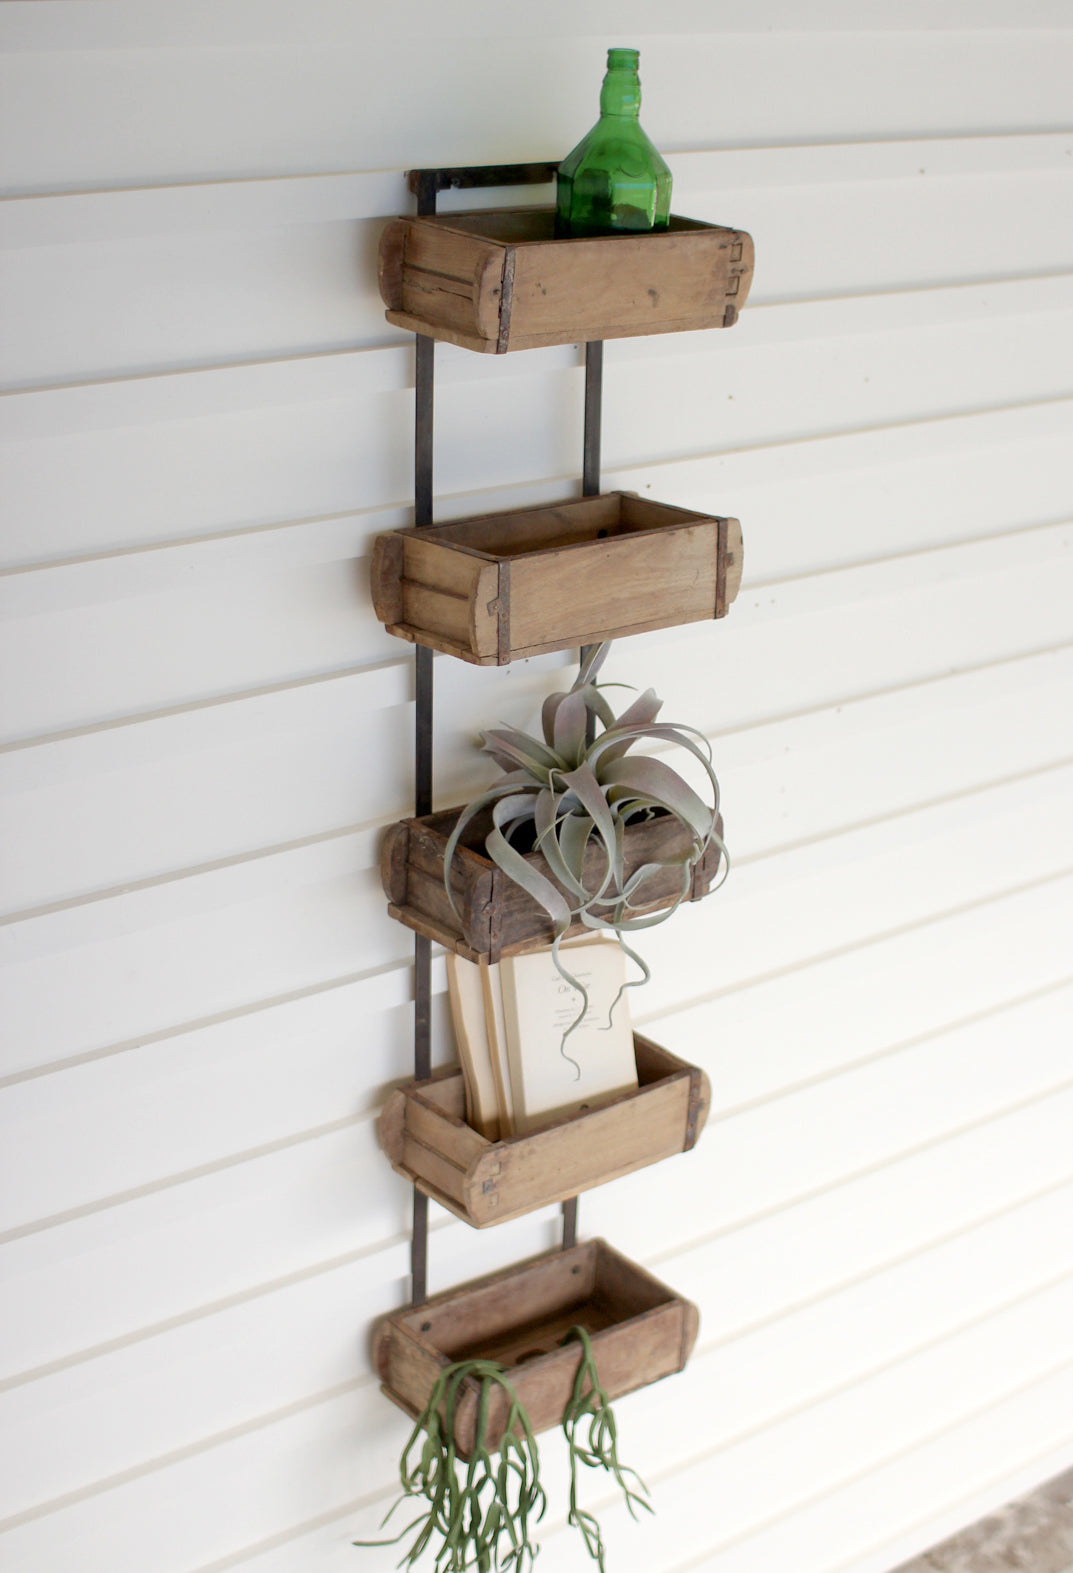 Recycled Wood Brick Mold Floating Wall Shelf